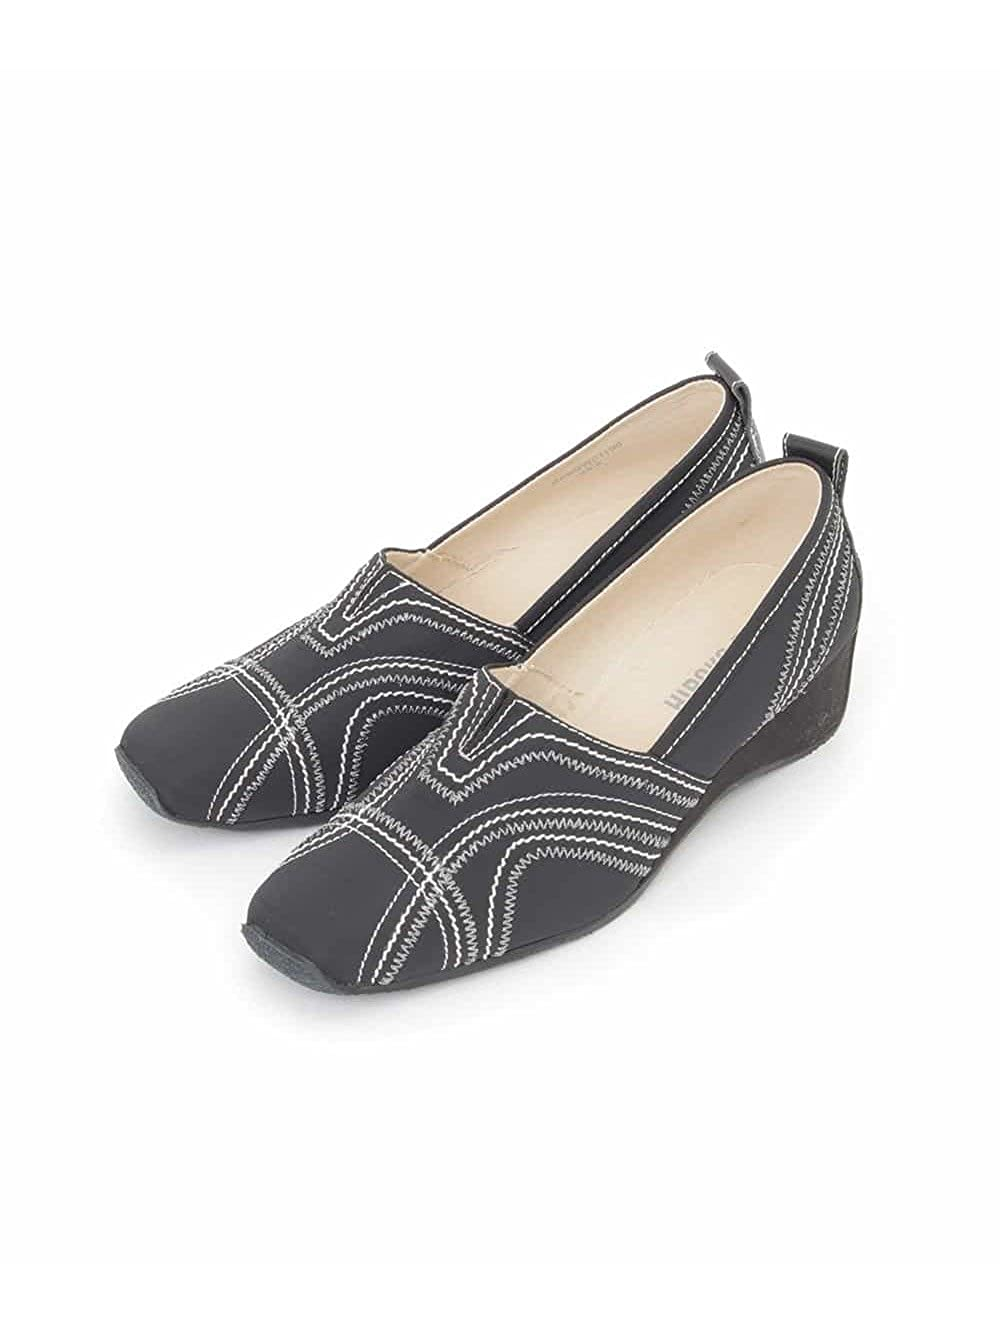 Clothing, Shoes & Accessories Marc By Marc Jacobs Flat Shoes Leather Punching Bracing Up The Whole System And Strengthening It Women's Shoes